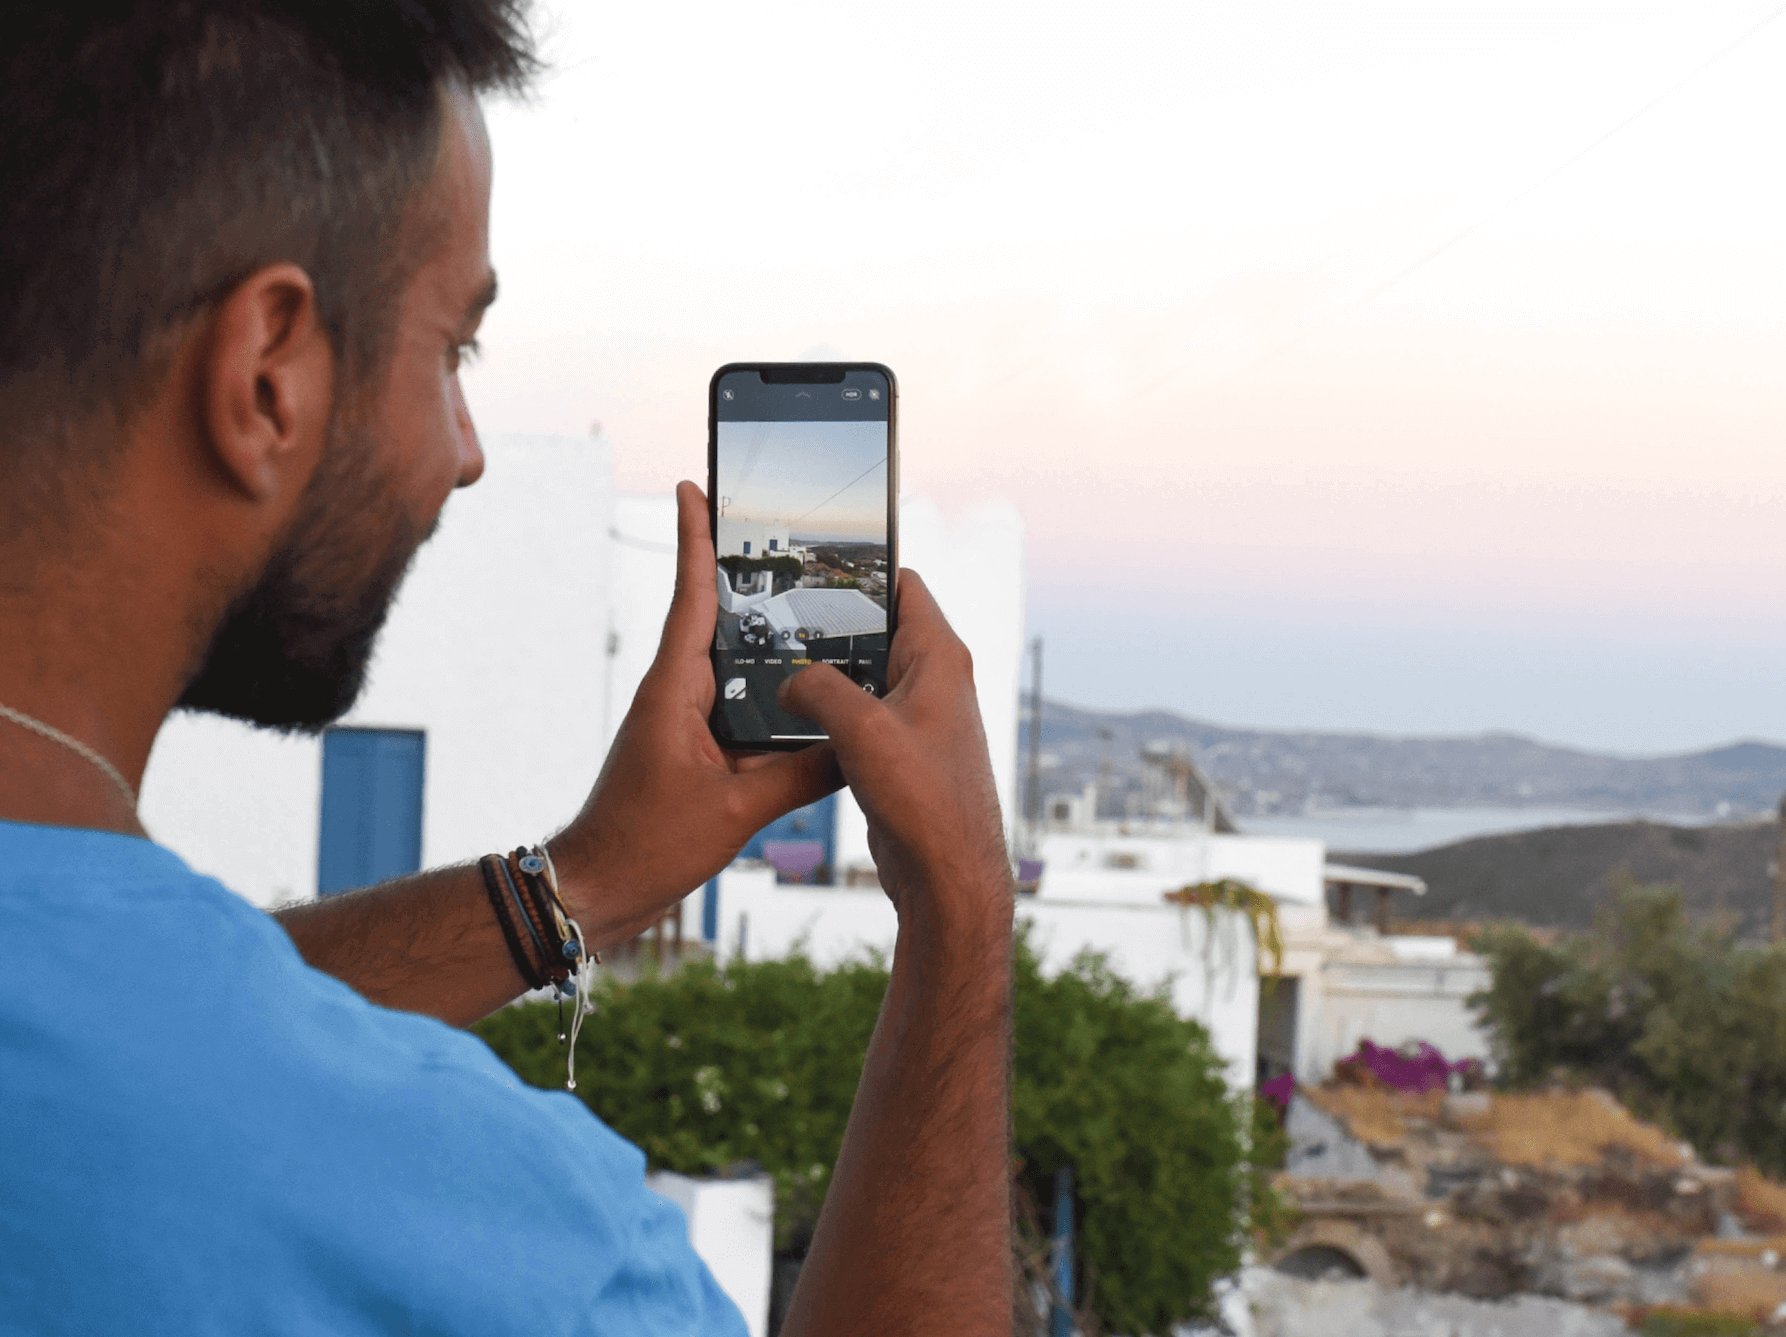 Hands holding an iPhone and taking a photo in Santorini